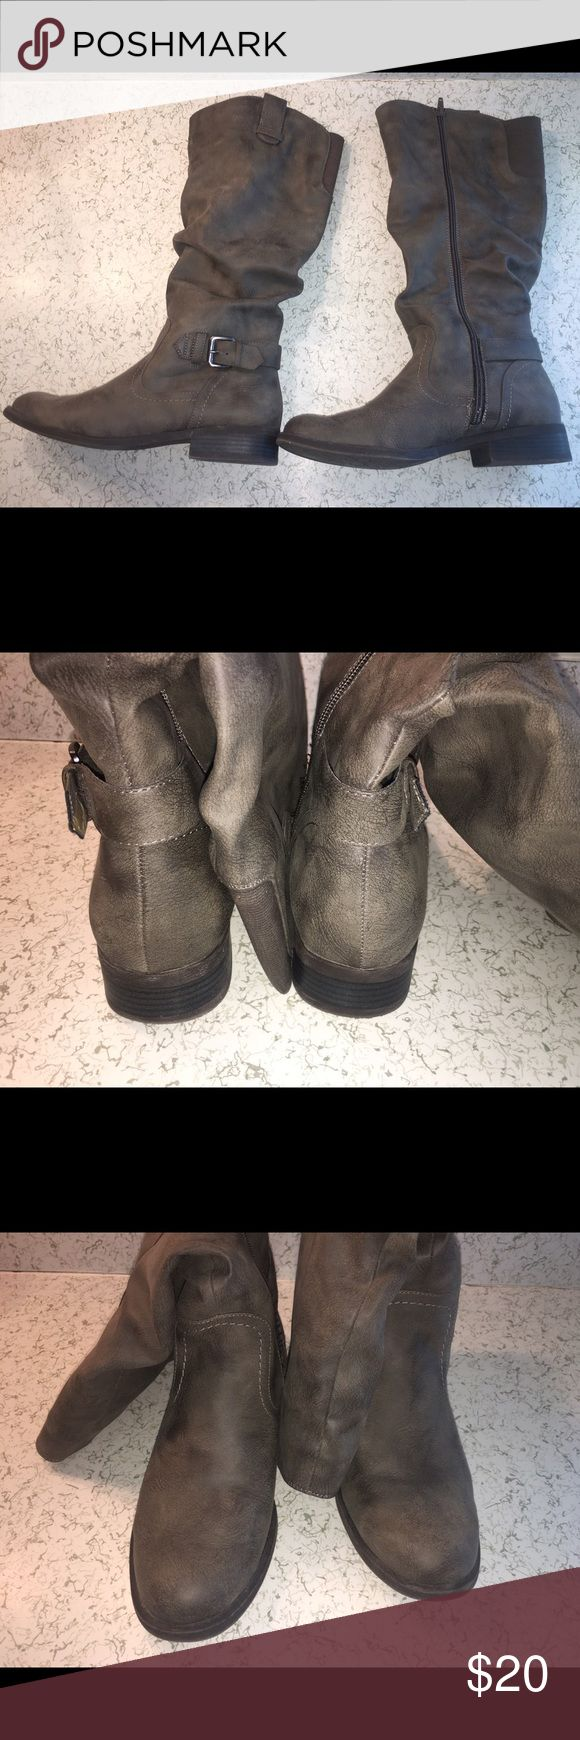 Riding Boots Excellent condition. Minimal wear. Perfect boots for the fall time. Shoes